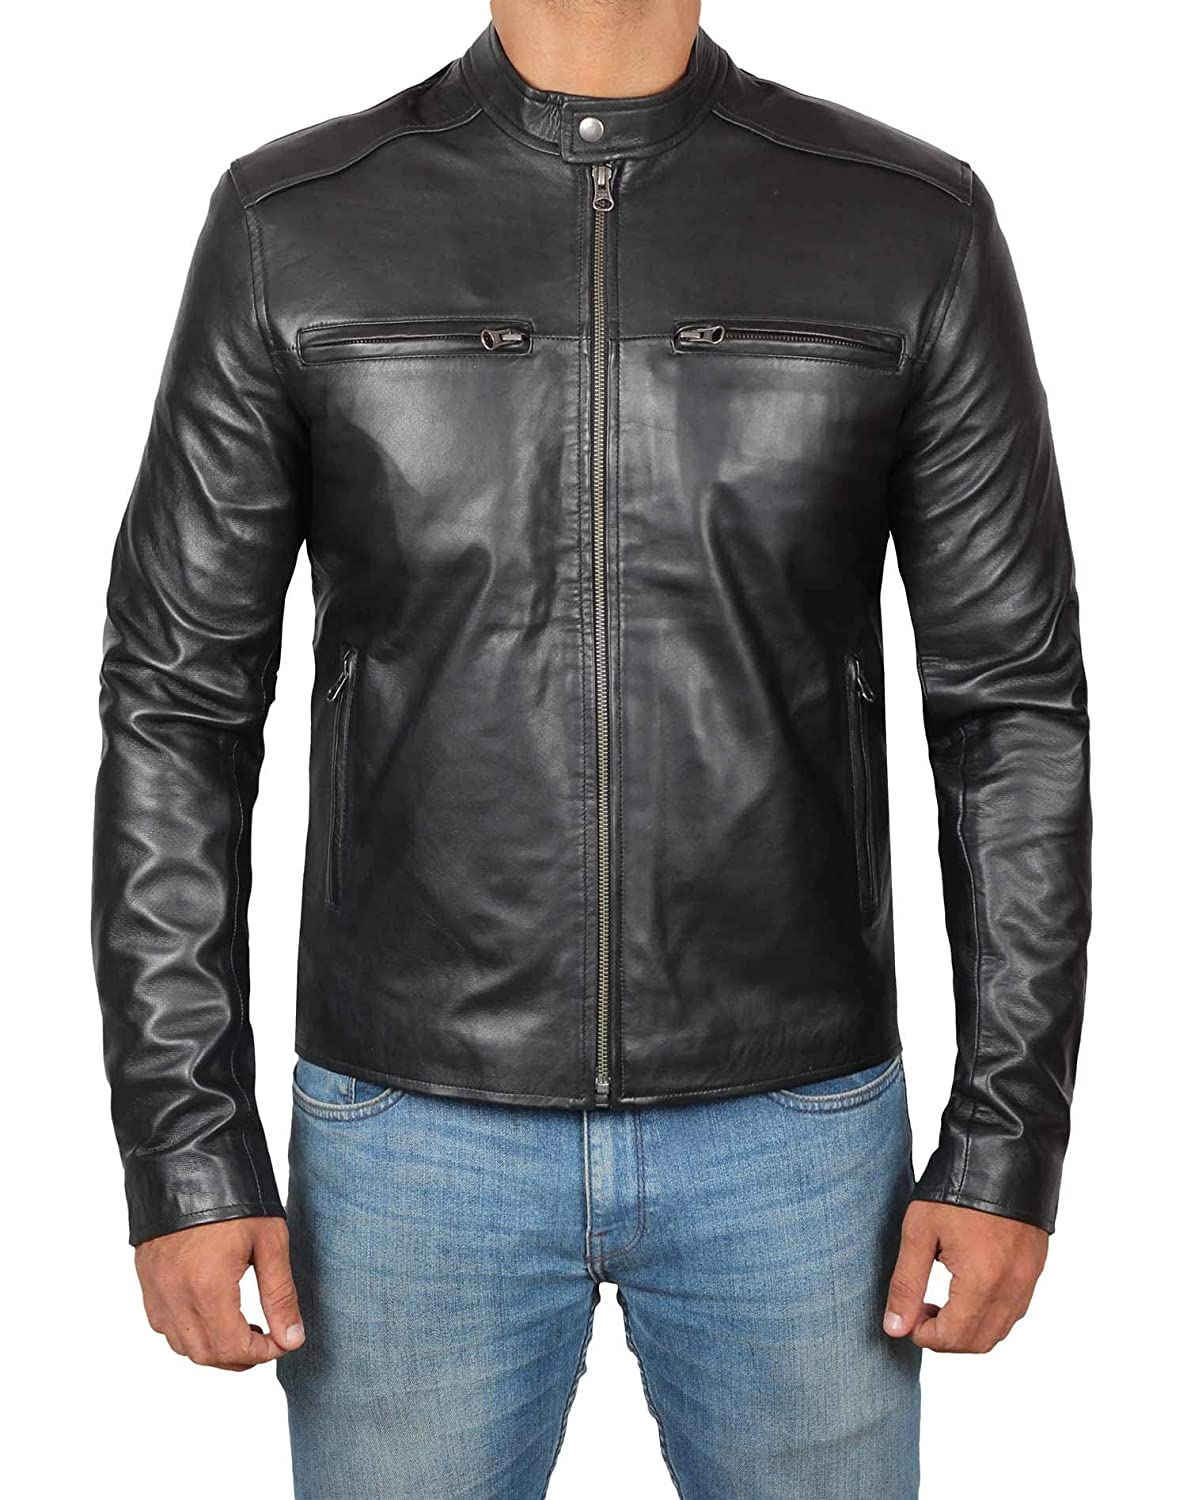 Decrum Motorcycle Jackets for Men - Black Slim Fit Biker Leather Jacket Mens 1280933-PP